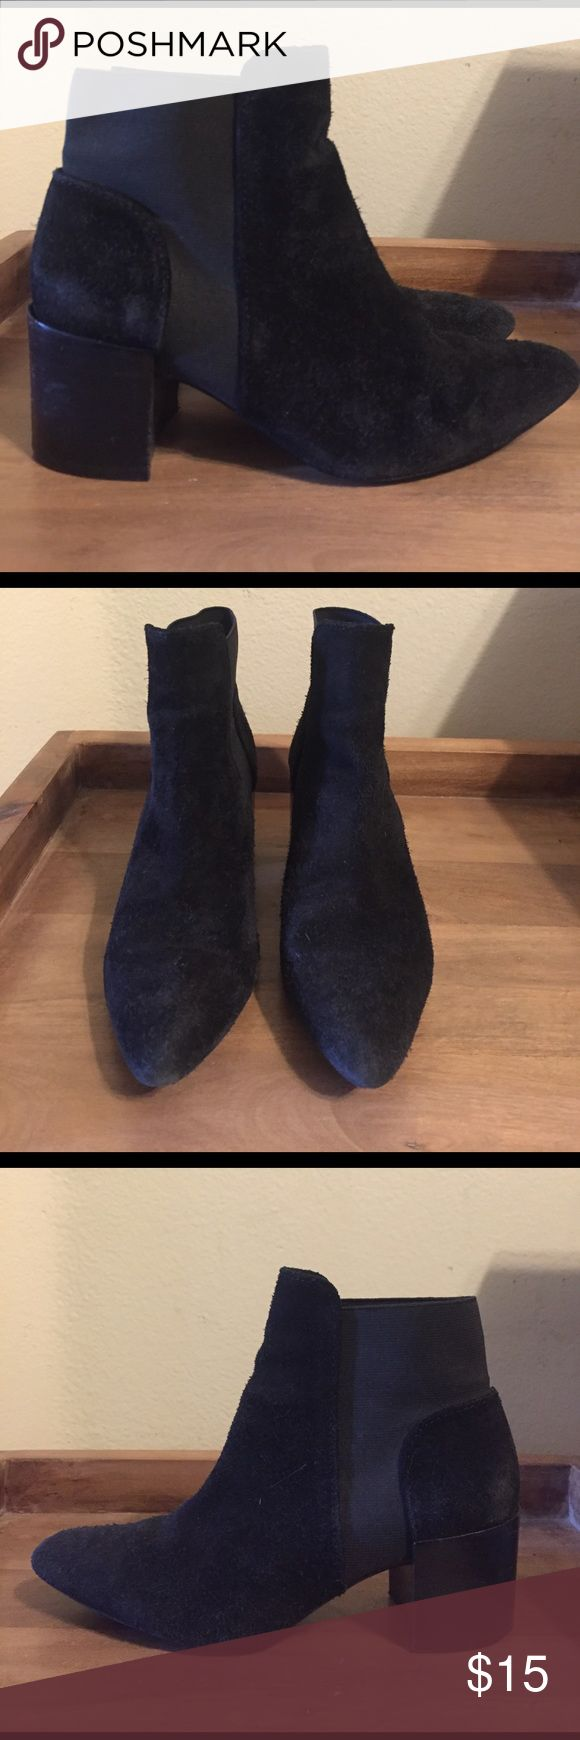 Zara Black Ankle Boots Zara women's black faux suede boots with black wooden heel and elastic details. Pointed toe. Very similar to the YSL and Acne Studios boots that are very popular. Size 6 US. Slightly worn, but look new! Zara Shoes Ankle Boots & Booties